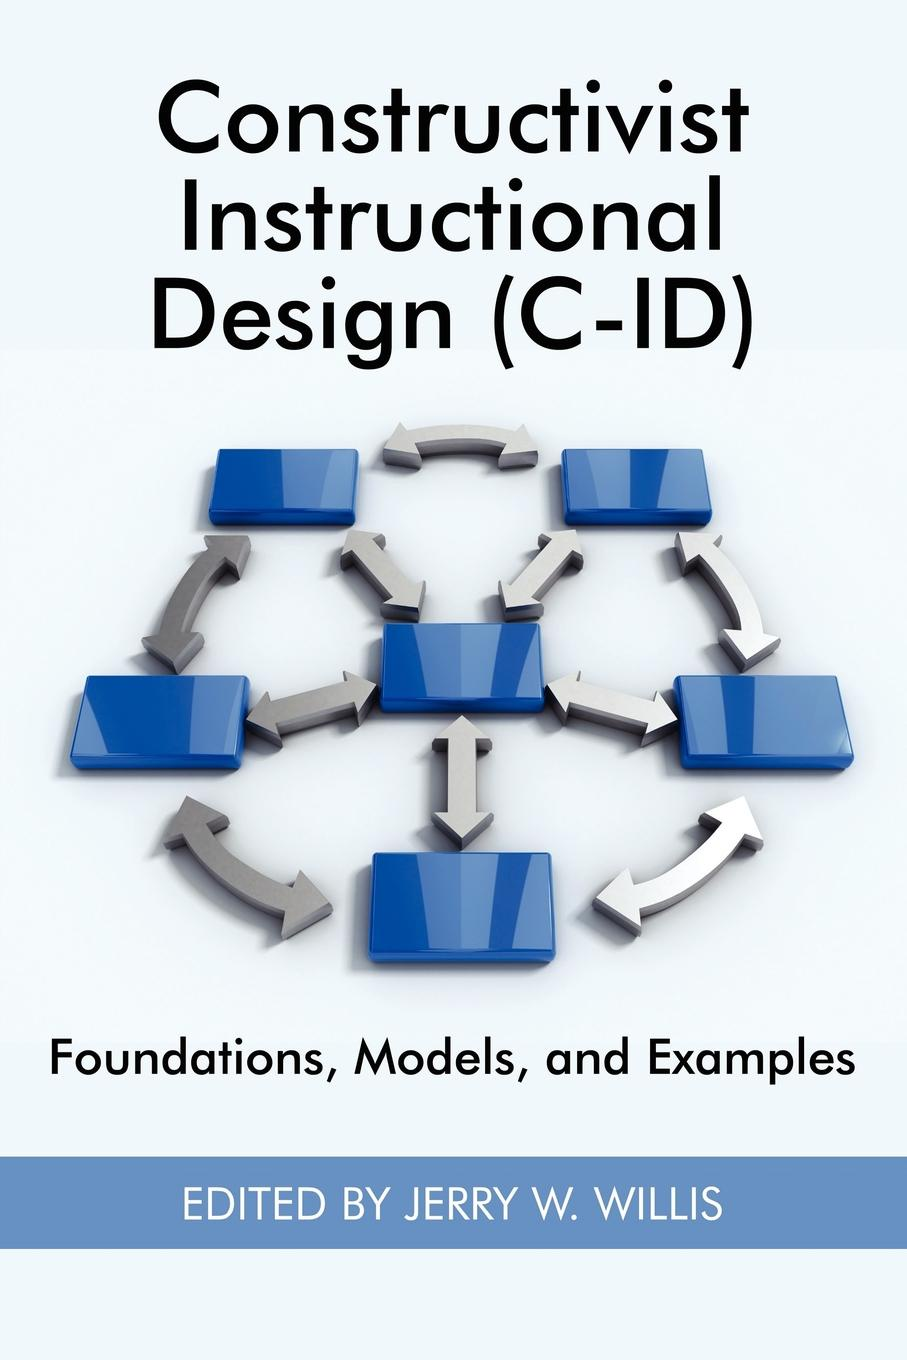 Constructivist Instructional Design (C-ID). Foundations, Models, and Examples george piskurich m rapid instructional design learning id fast and right